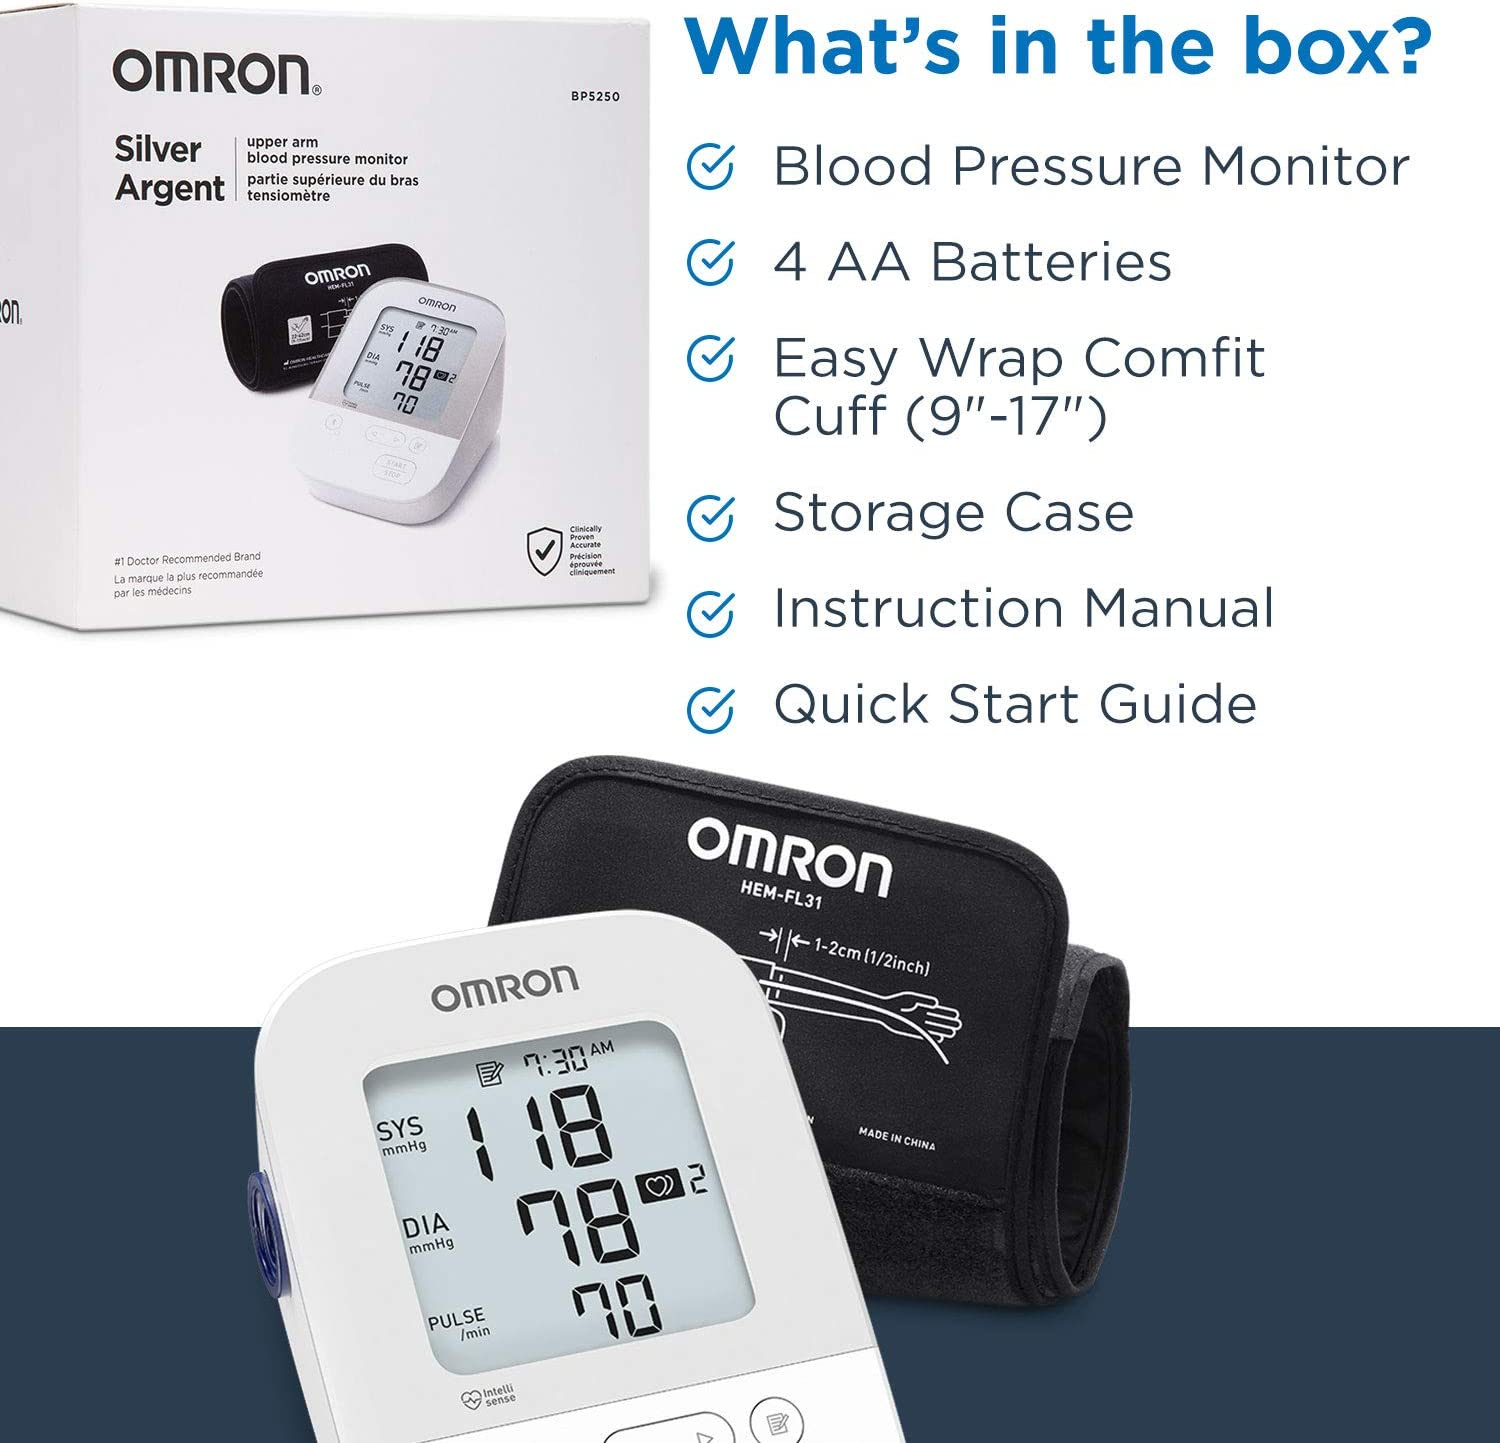 OMRON Silver Blood Pressure Monitor, Upper Arm Cuff, Digital Bluetooth Blood Pressure Machine, Stores Up To 80 Readings